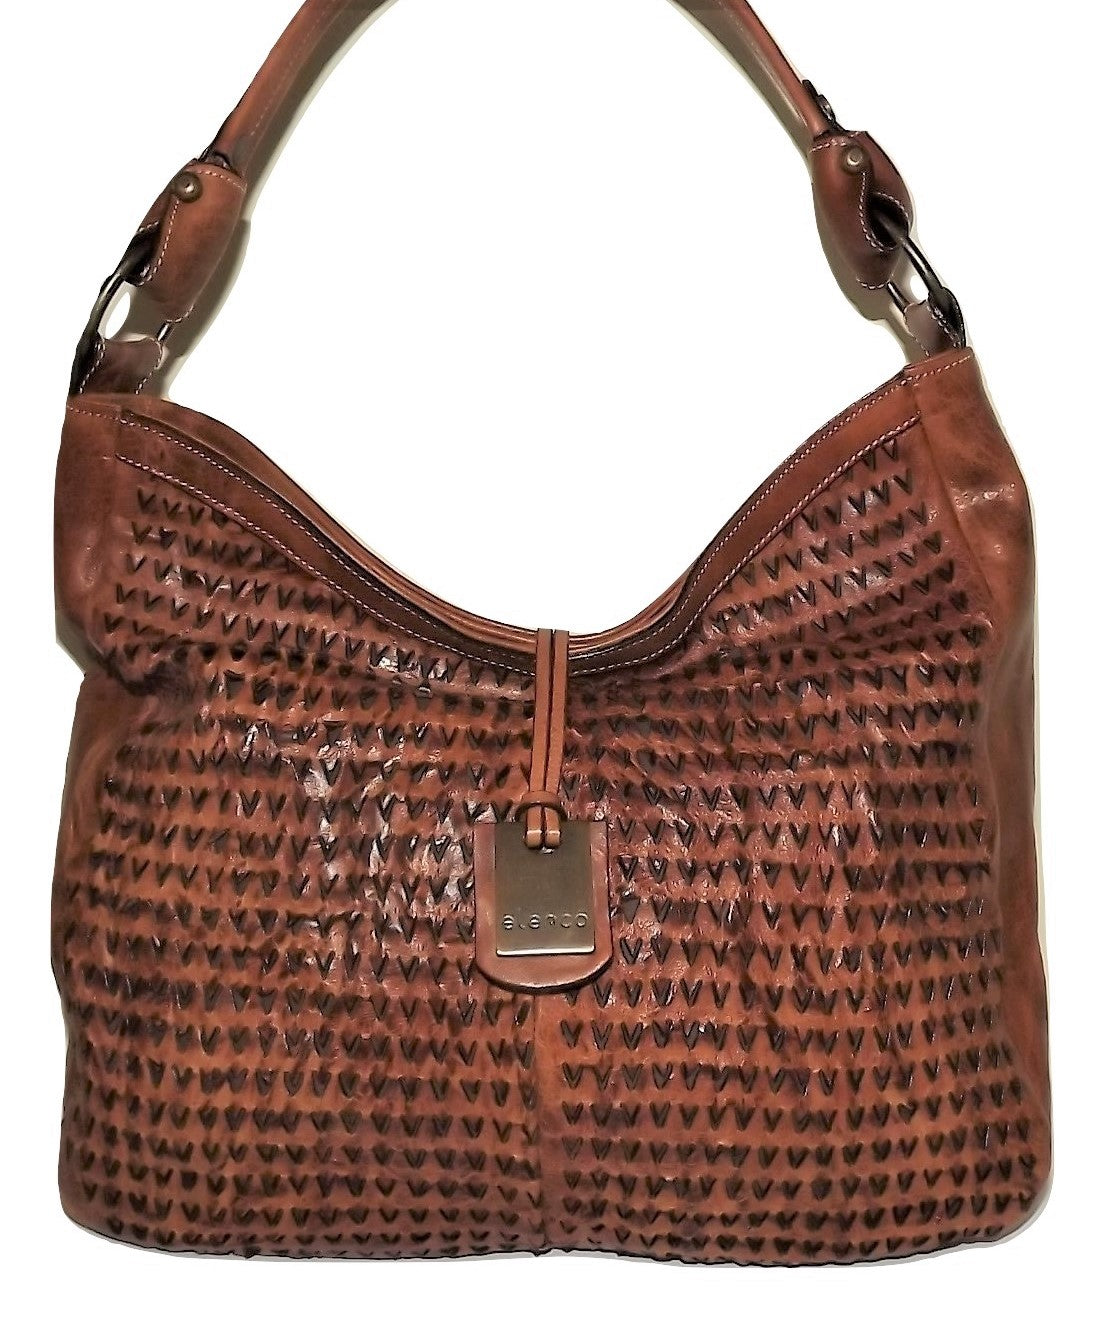 Elenco Aveiro Hobo Bag Crossbody Bag Cognac